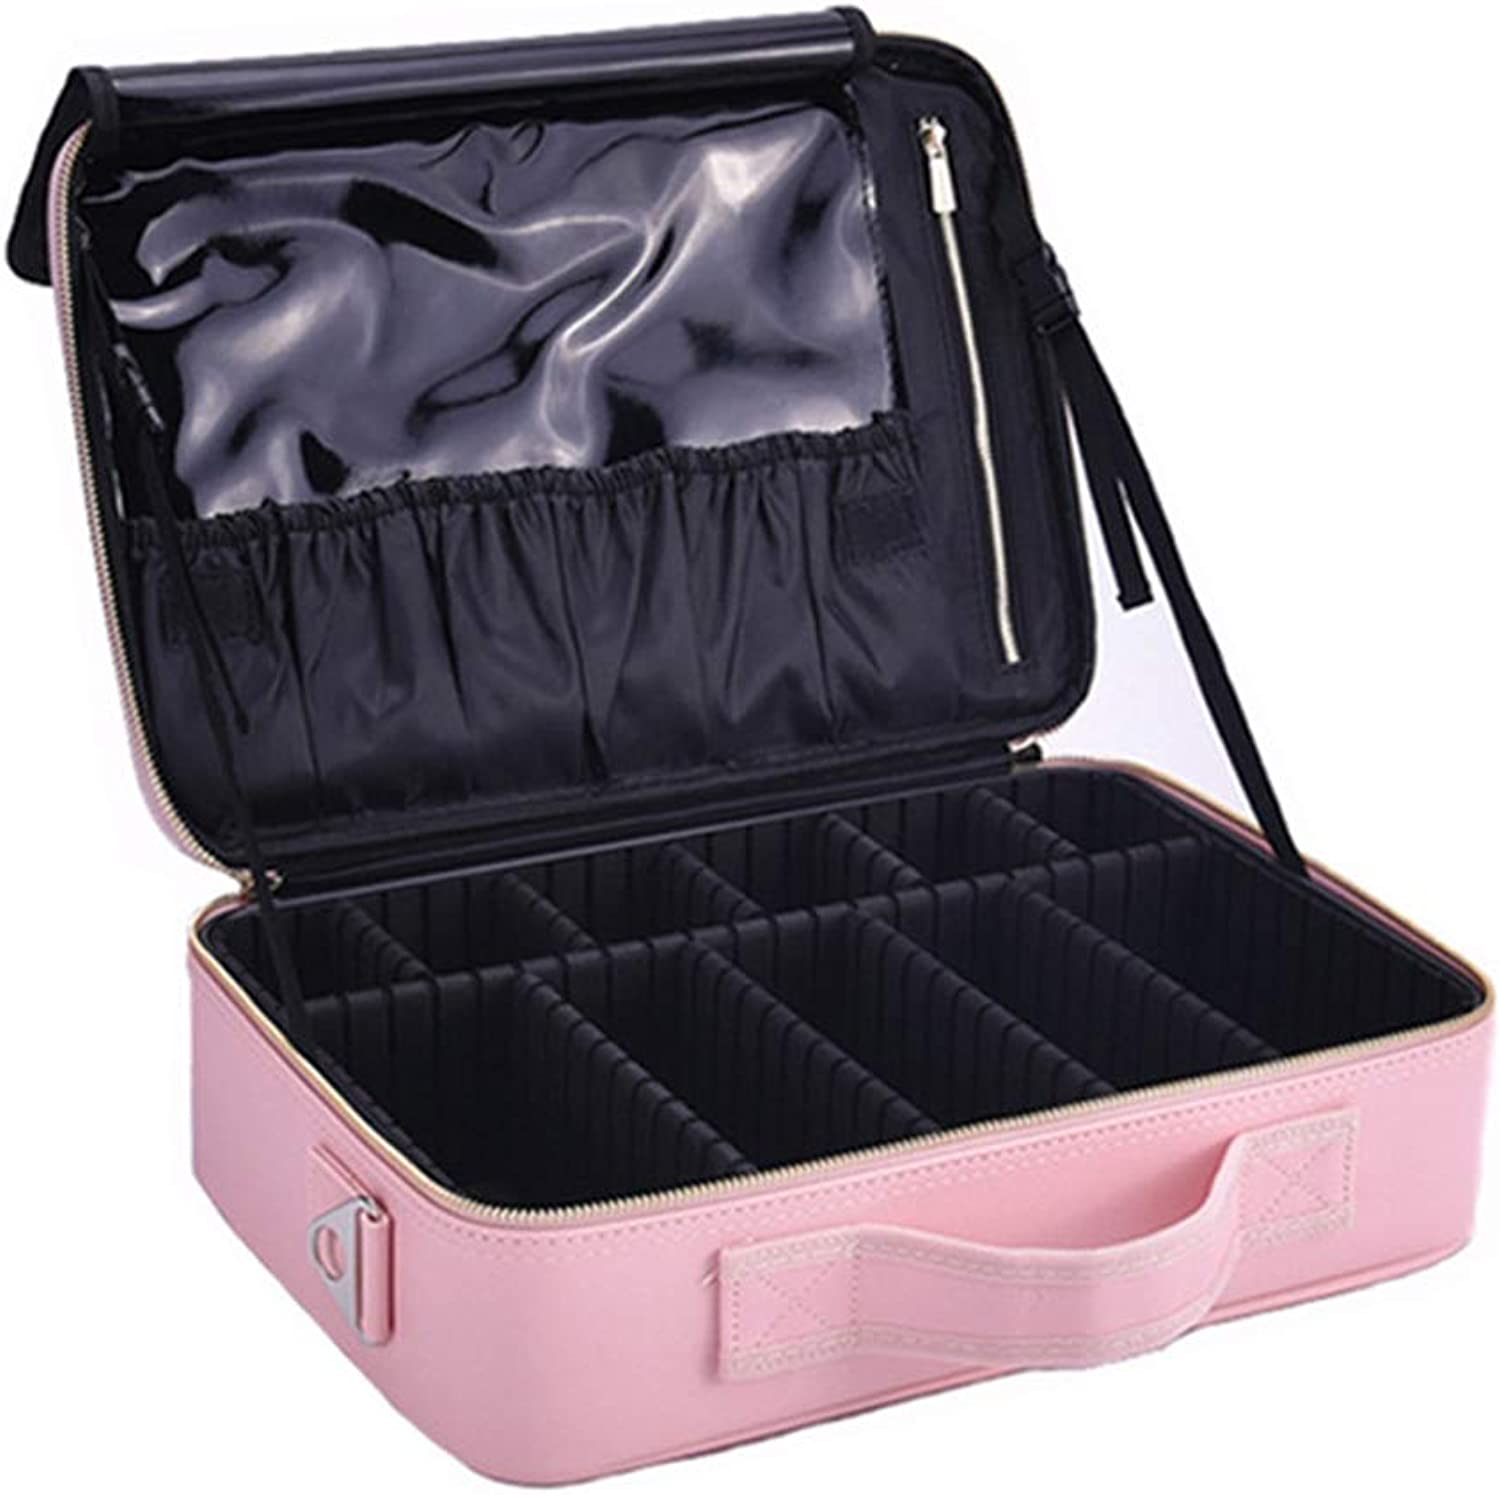 3c29c18c35c3f Kosmetiktasche Detachable Partition Professional Portable Portable Portable  Three-Layer Gro szlig -Kapazit auml t wasserdichte Makeup Bag f uuml r Men  ...